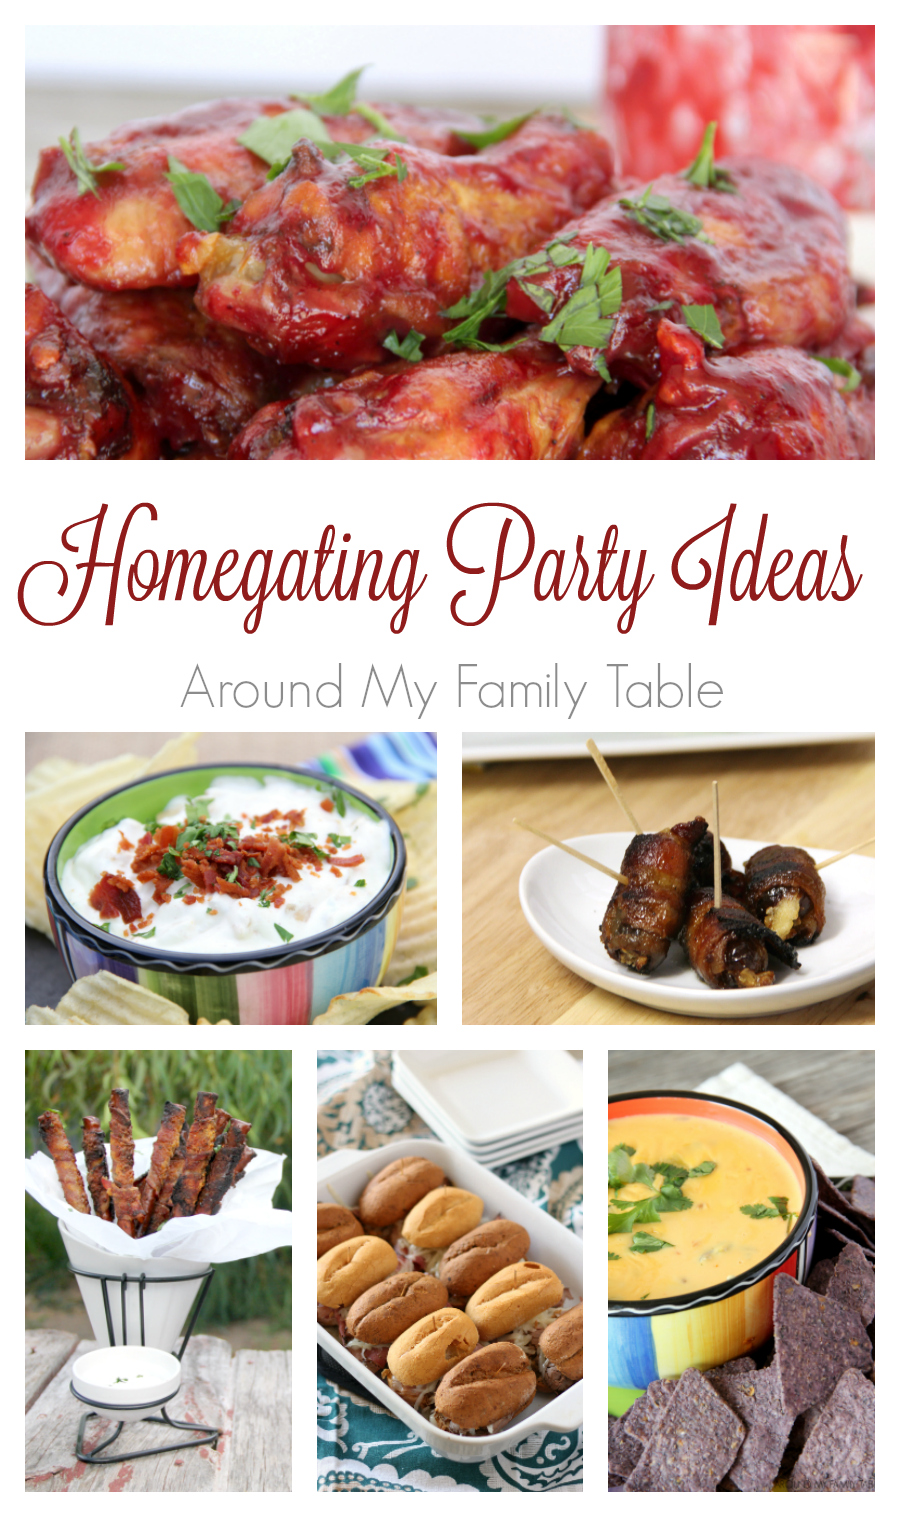 If you aren't heading out to catch the game at the stadium, then stay home and invite some friends over. These Homegating Party Ideas will keep your guests full and happy for the whole game.